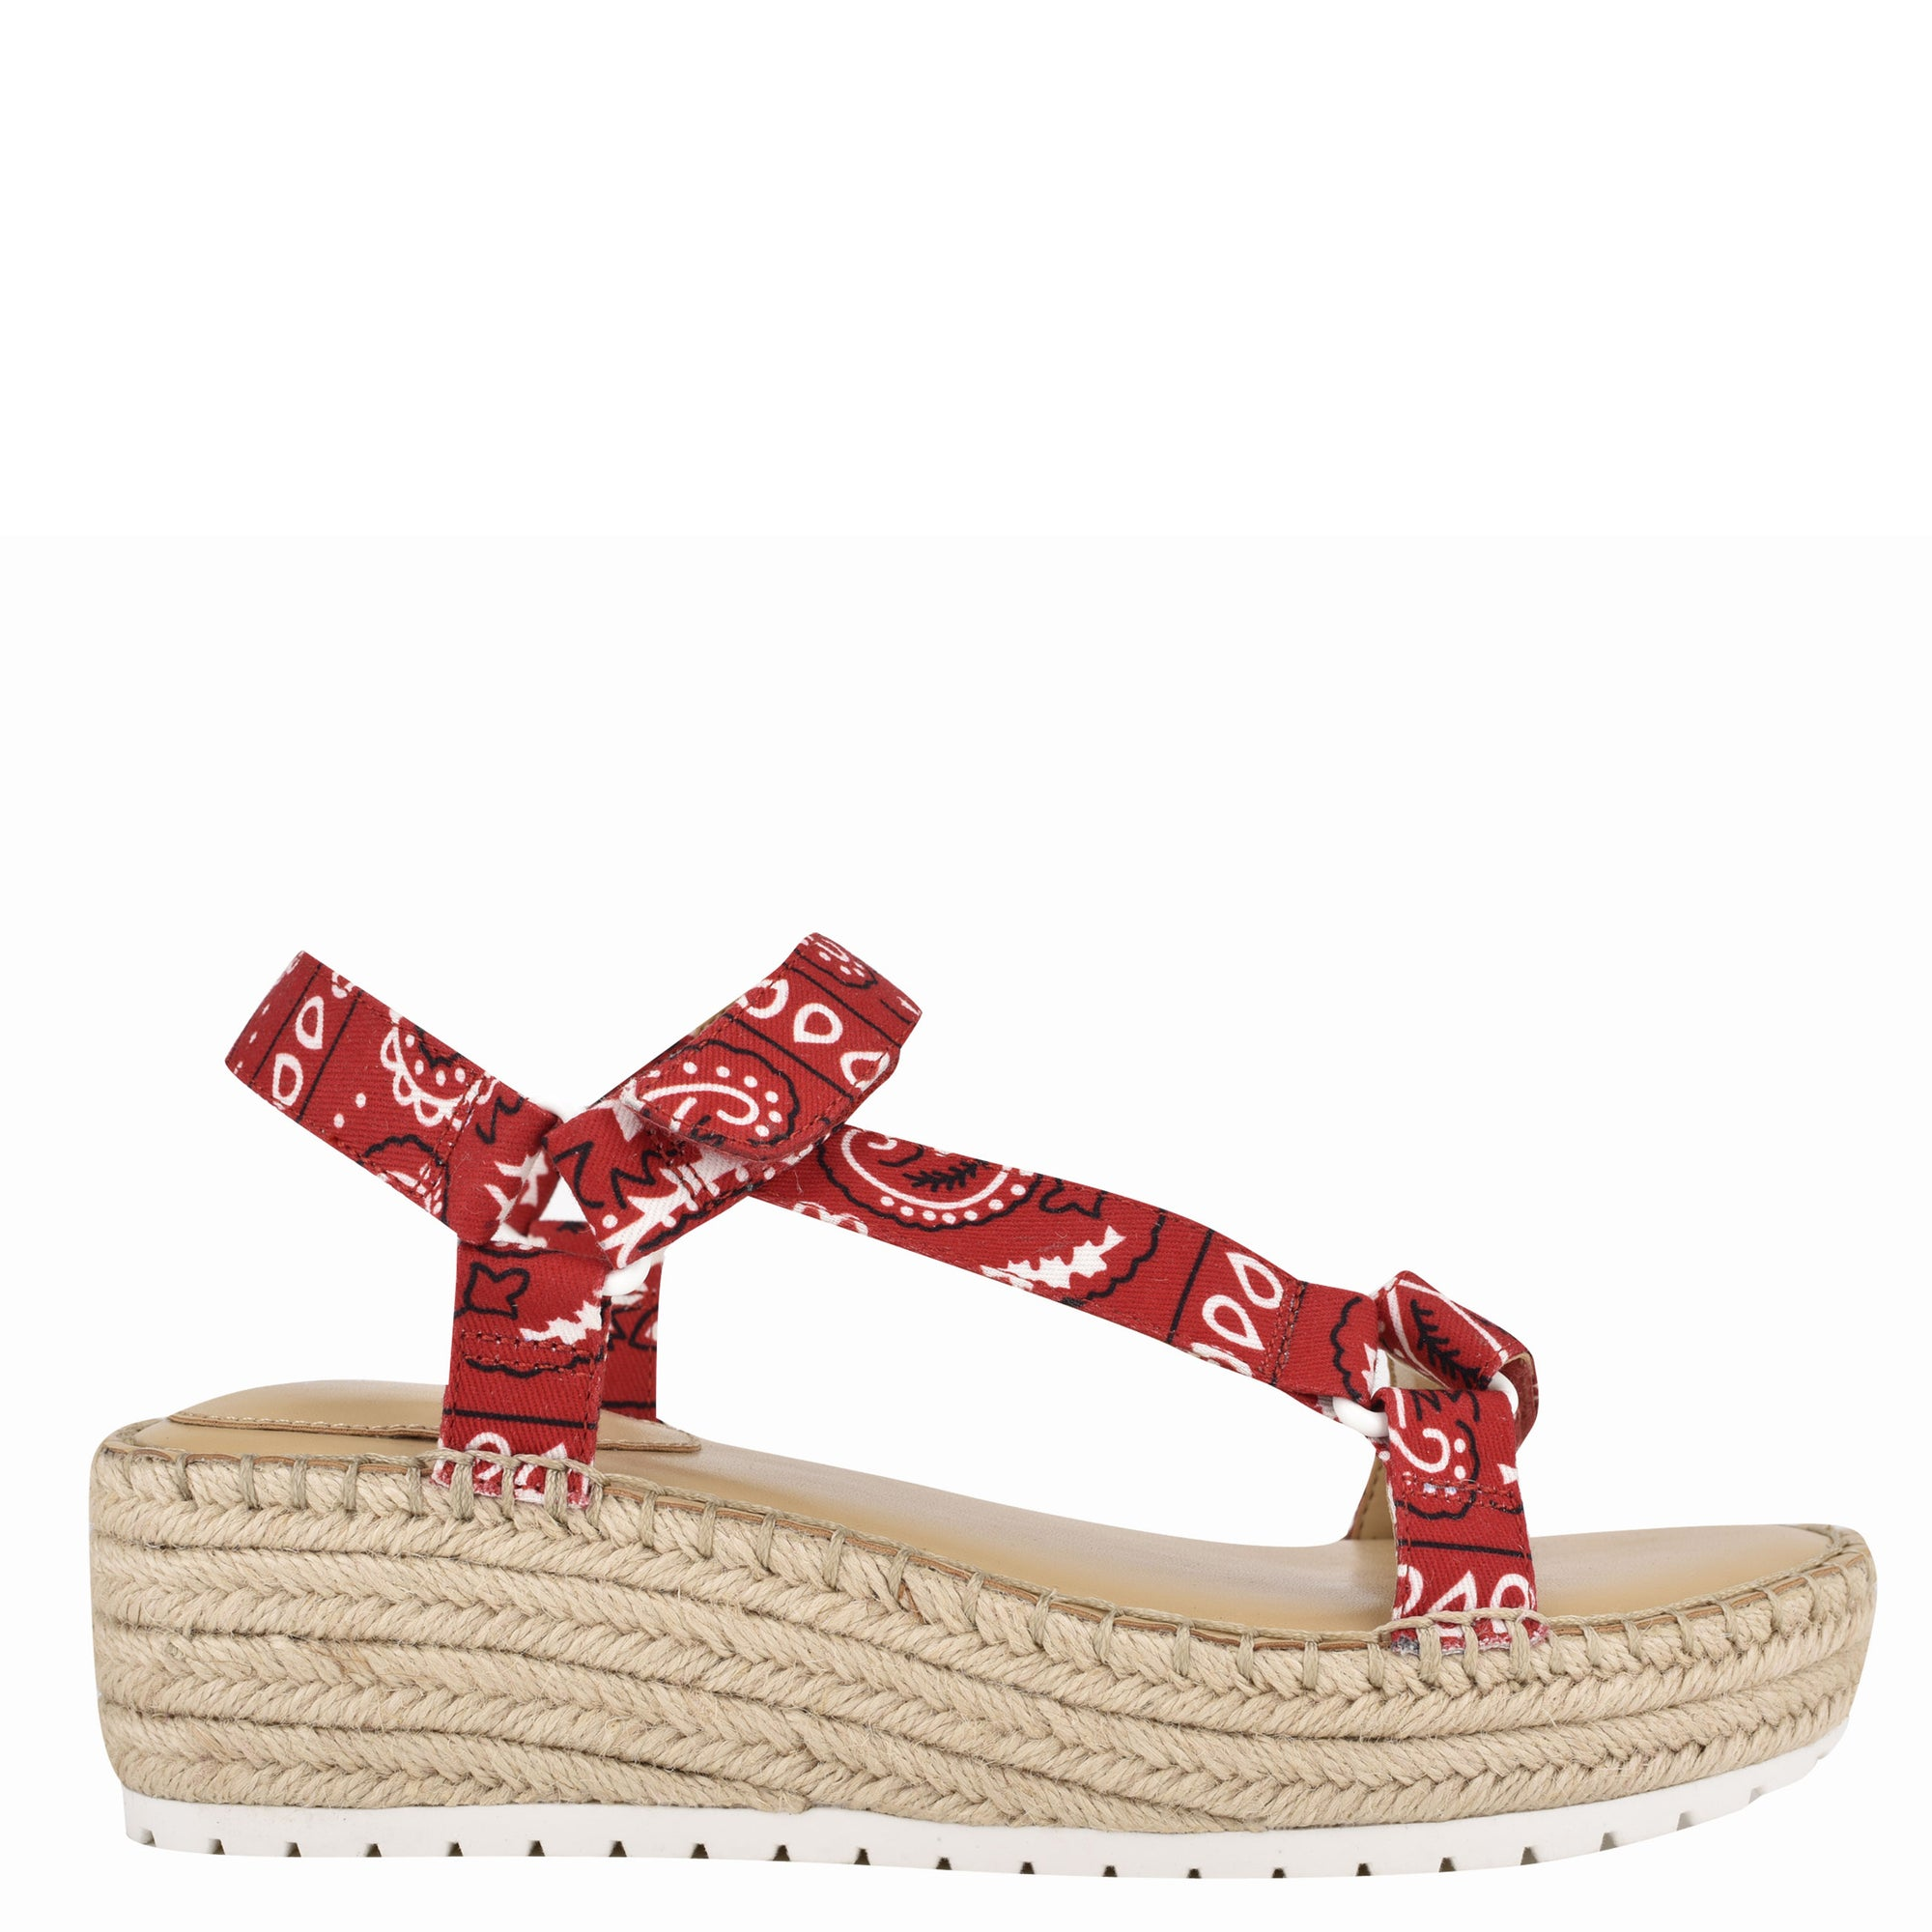 Glampin Espadrille Wedge Sandals